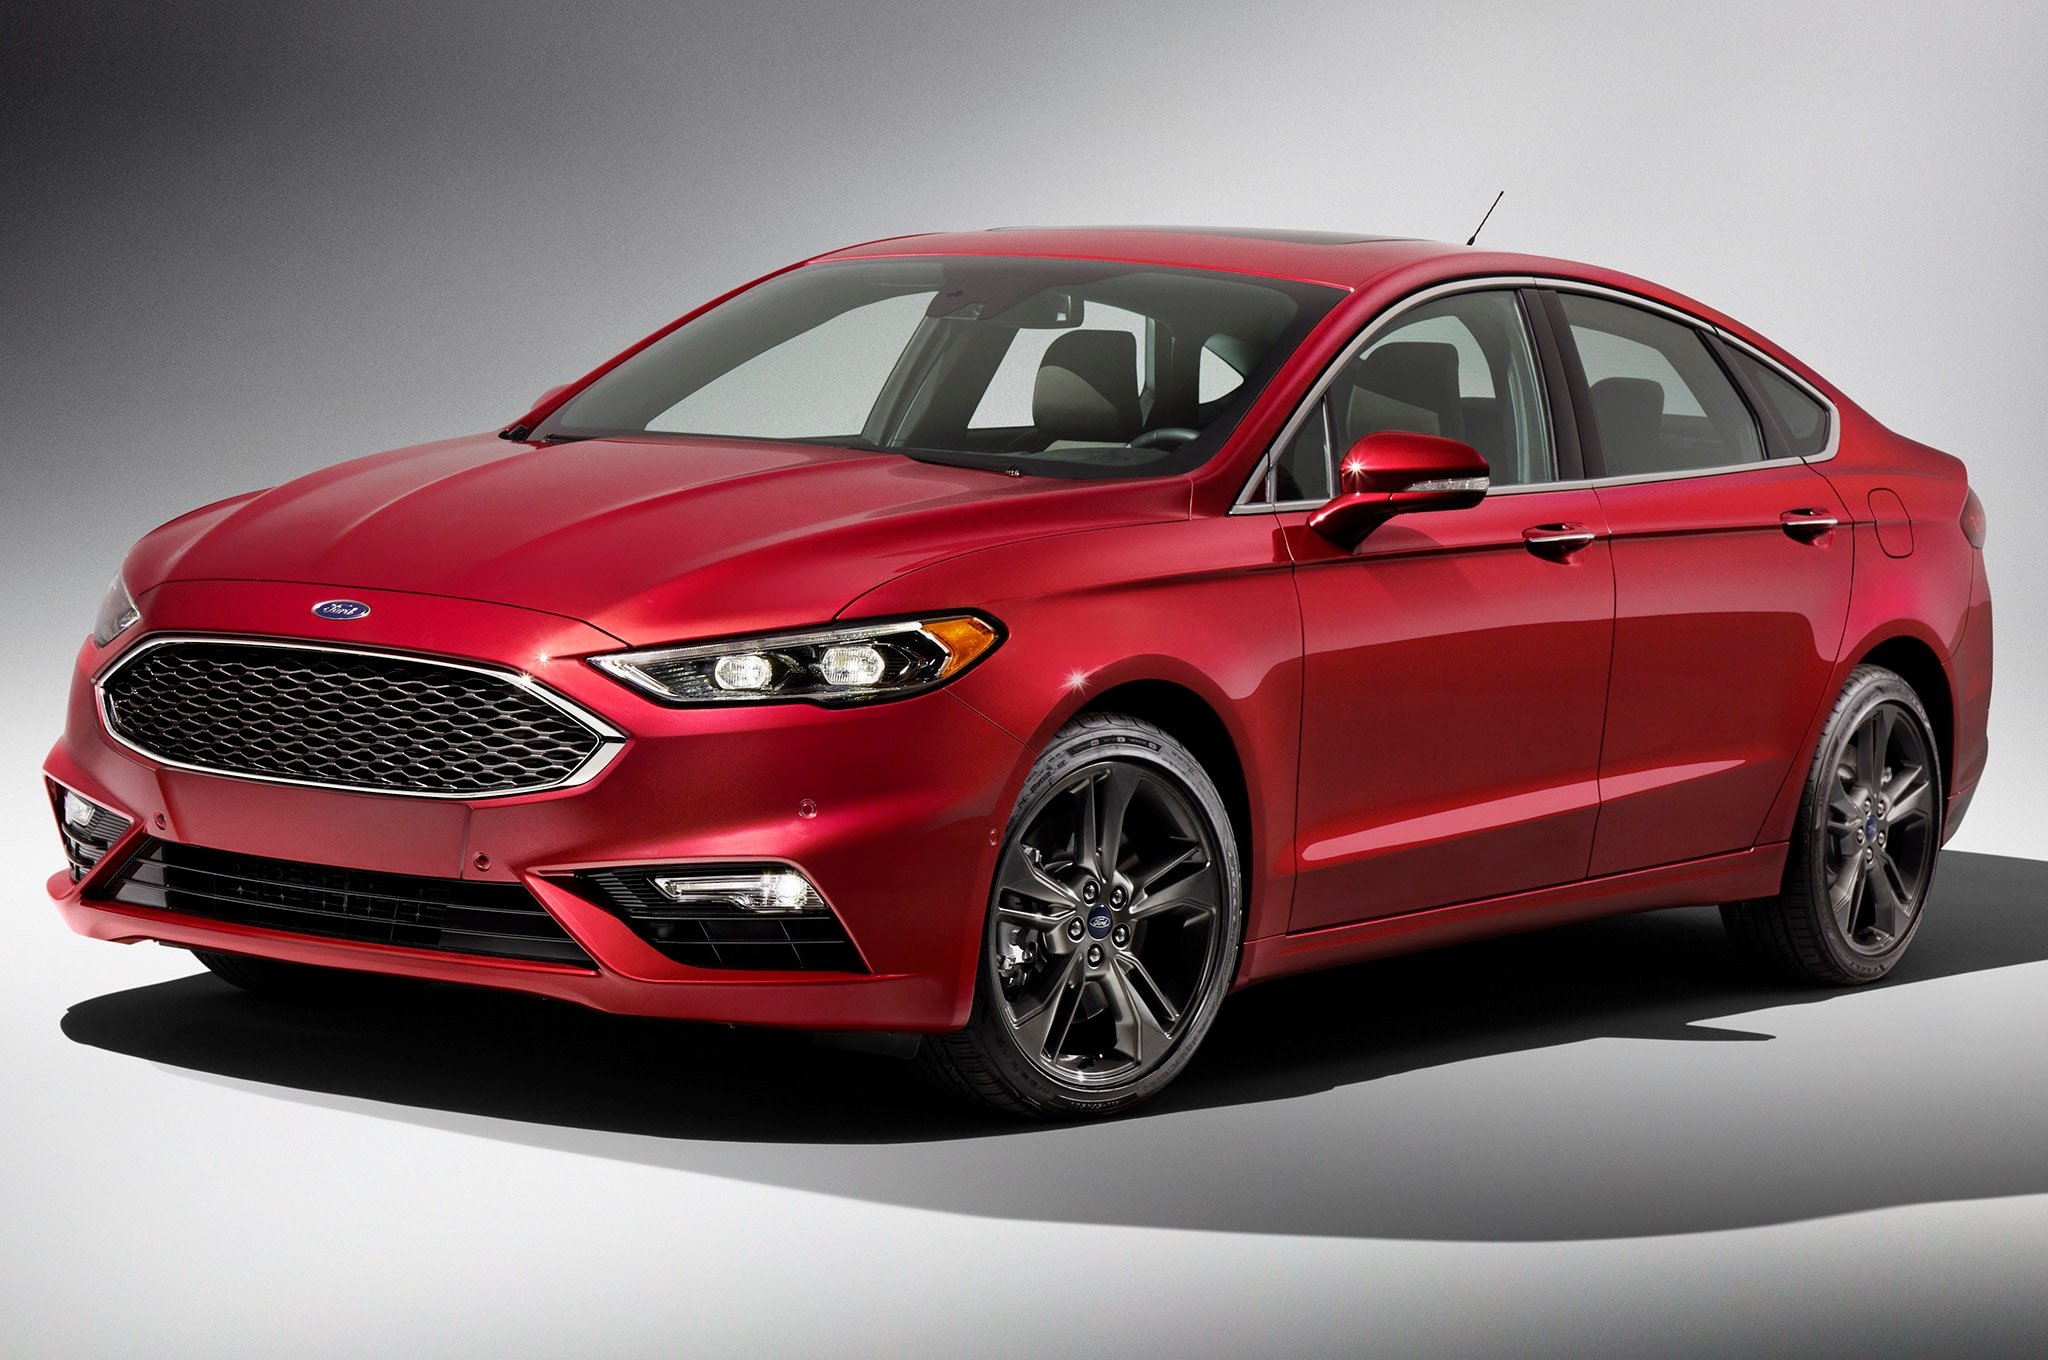 2017 ford fusion refreshed for detroit adds 325 hp v6 sport model. Black Bedroom Furniture Sets. Home Design Ideas